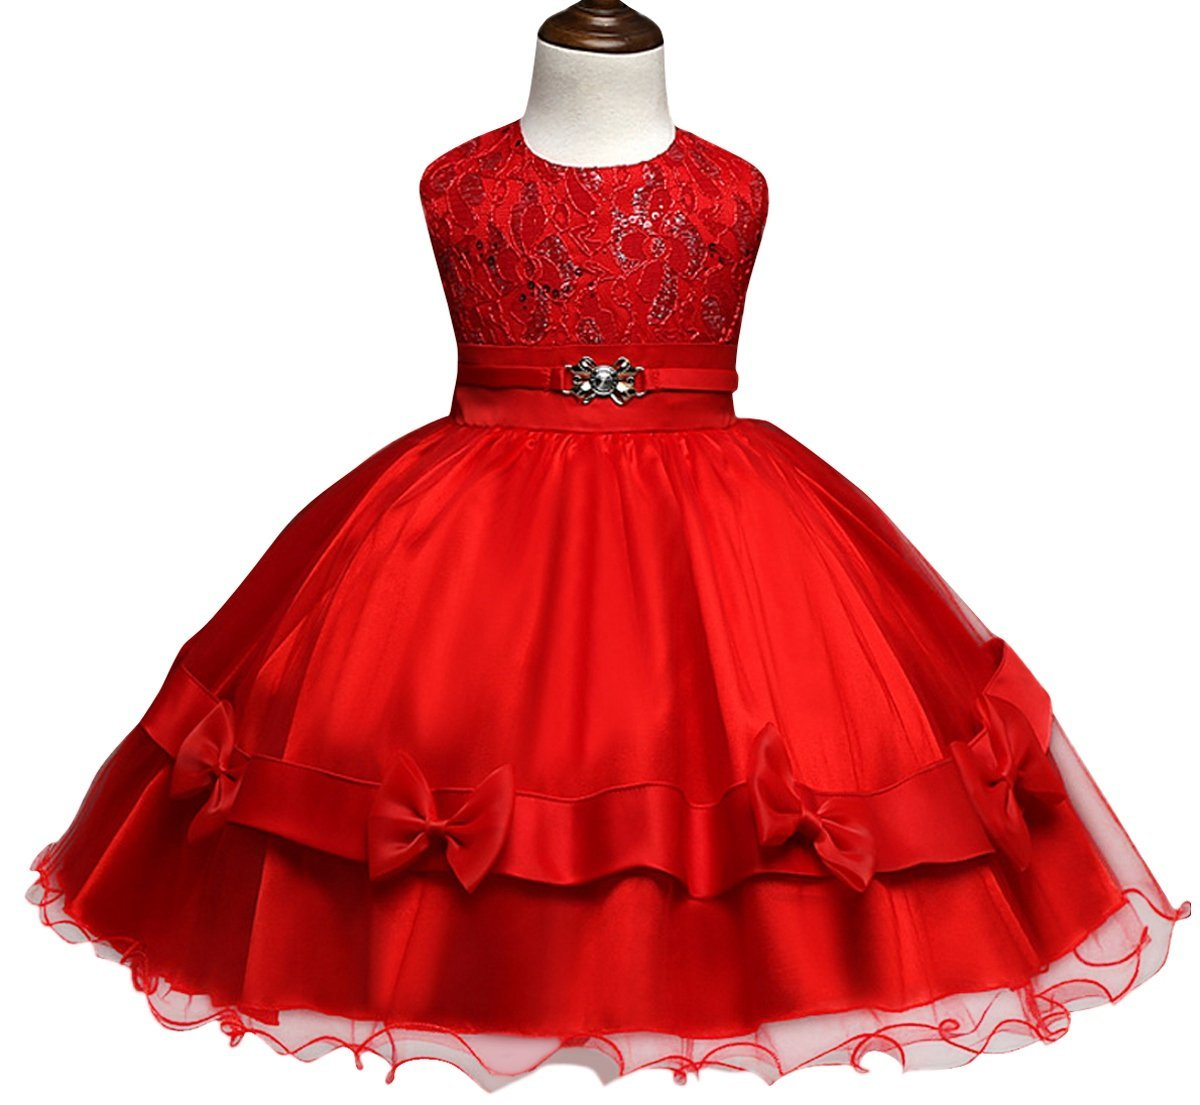 Flower Girls Princess Lace Bow Tutu Skirts Wedding Party Pageant Tulle Dresses Aivtalk